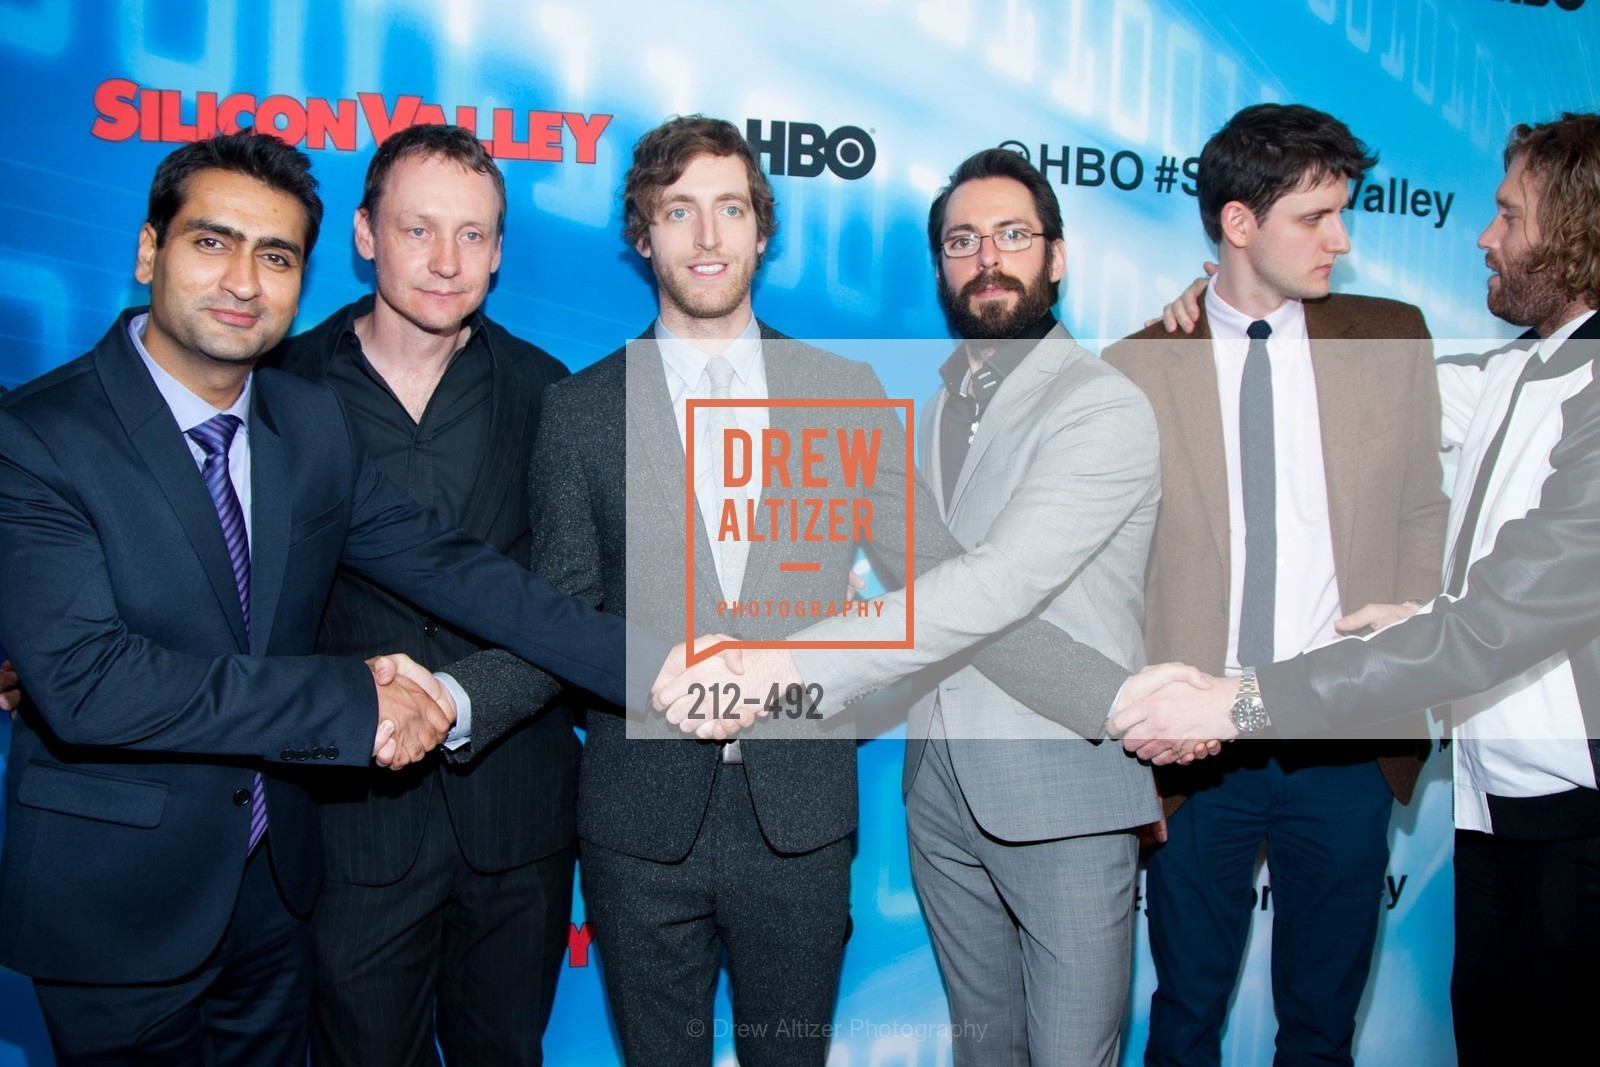 Kumail Nanjiani, Alec Berg, Thomas Middleditch, Martin Starr, Zach Woods, HBO Original Series 'Silicon Valley' Bay Area Premiere, US. US, April 2nd, 2014,Drew Altizer, Drew Altizer Photography, full-service agency, private events, San Francisco photographer, photographer california